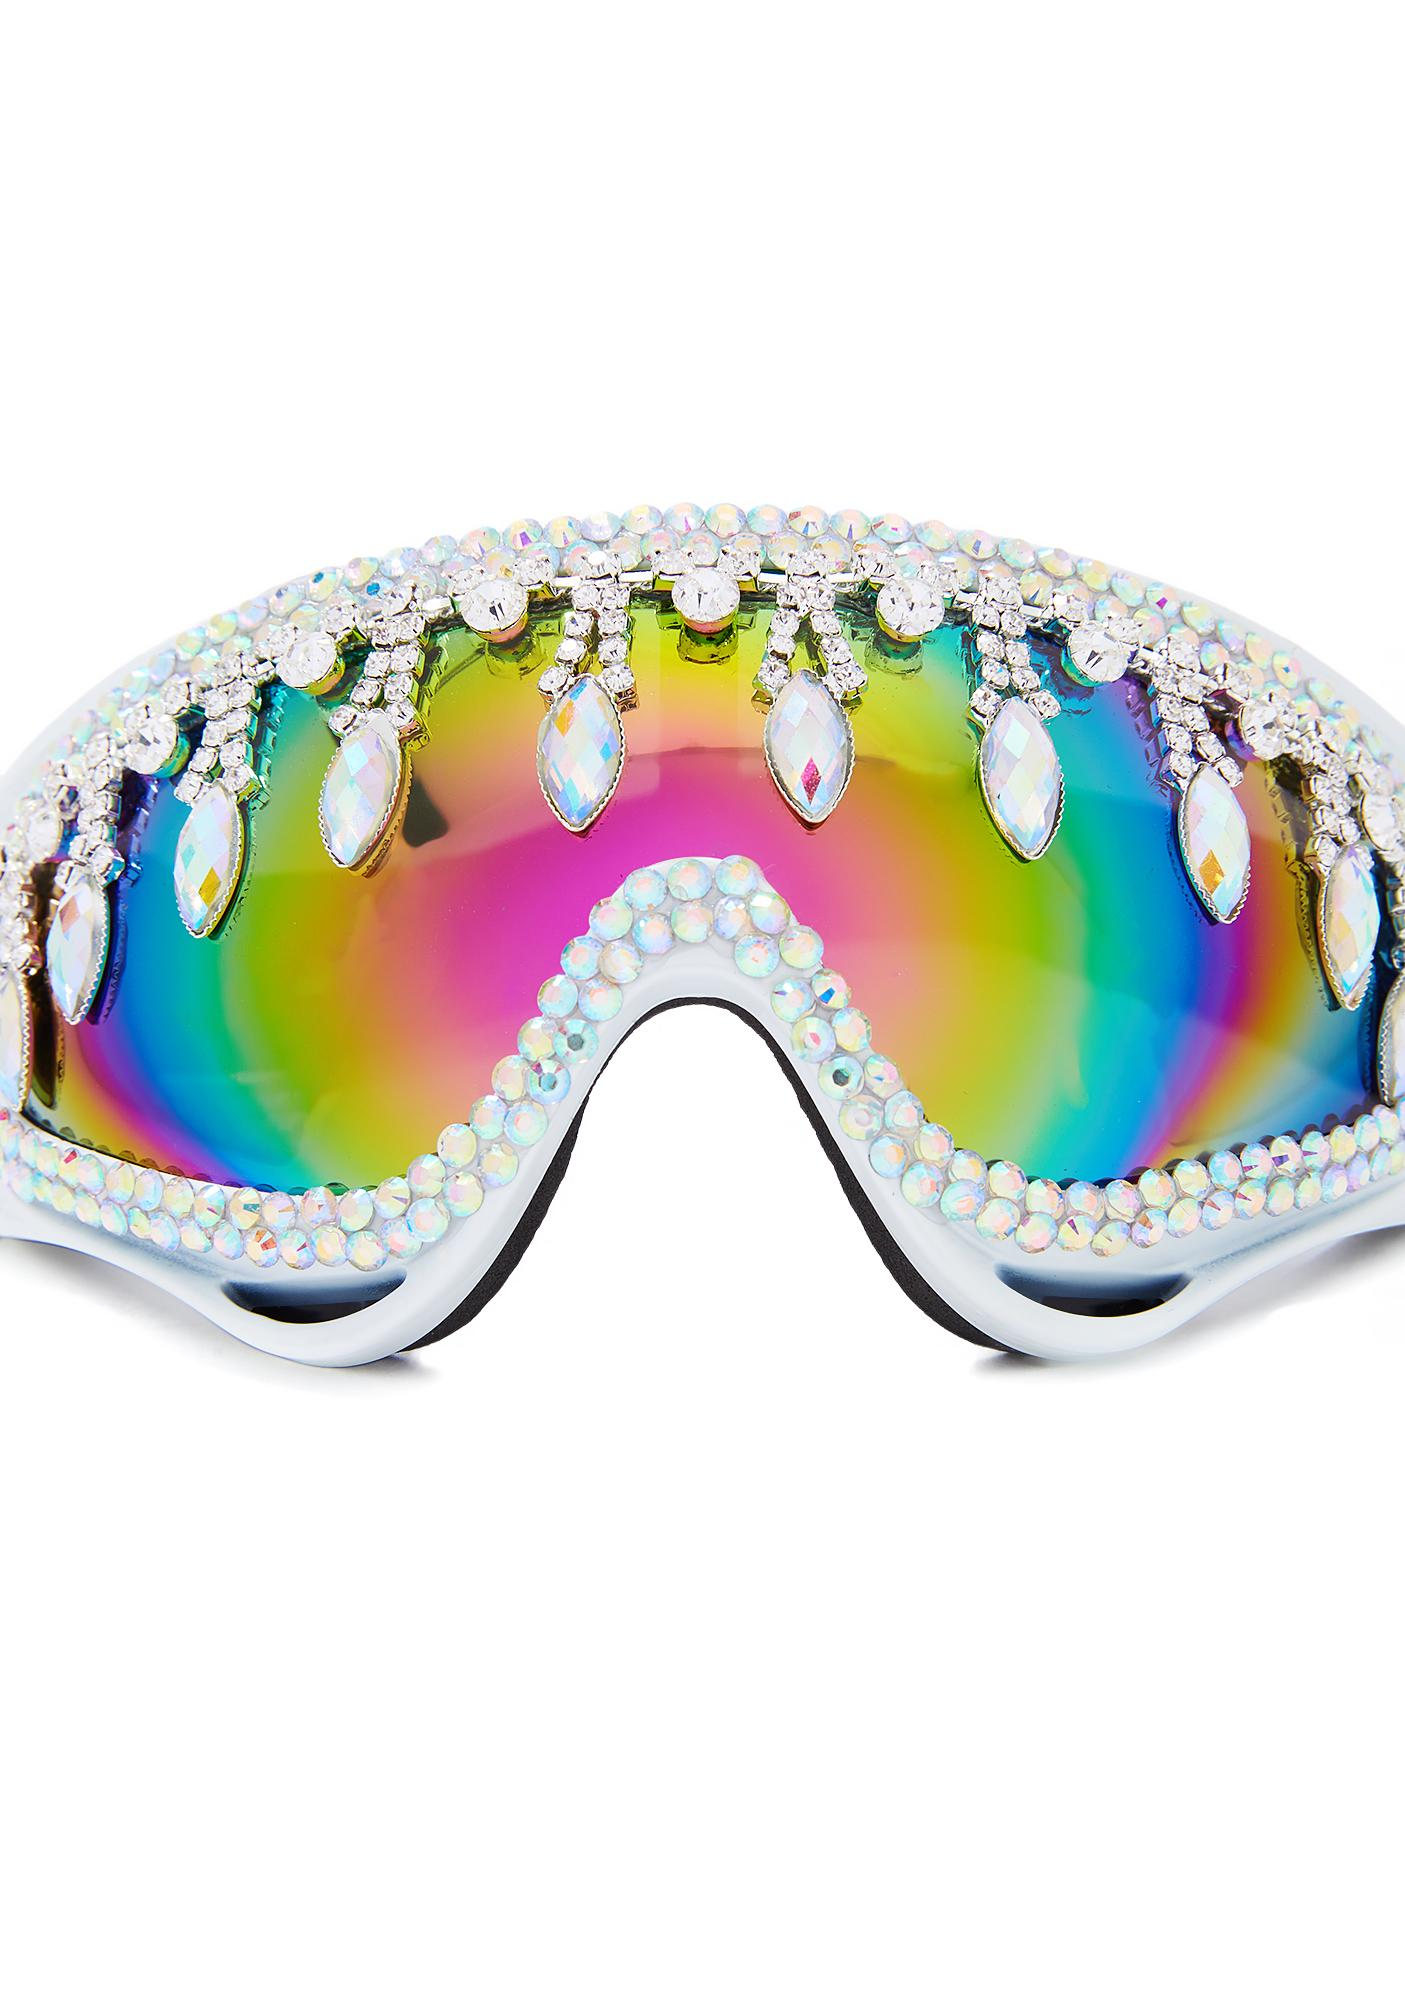 The Lyte Couture Disco Sparkle Goggles